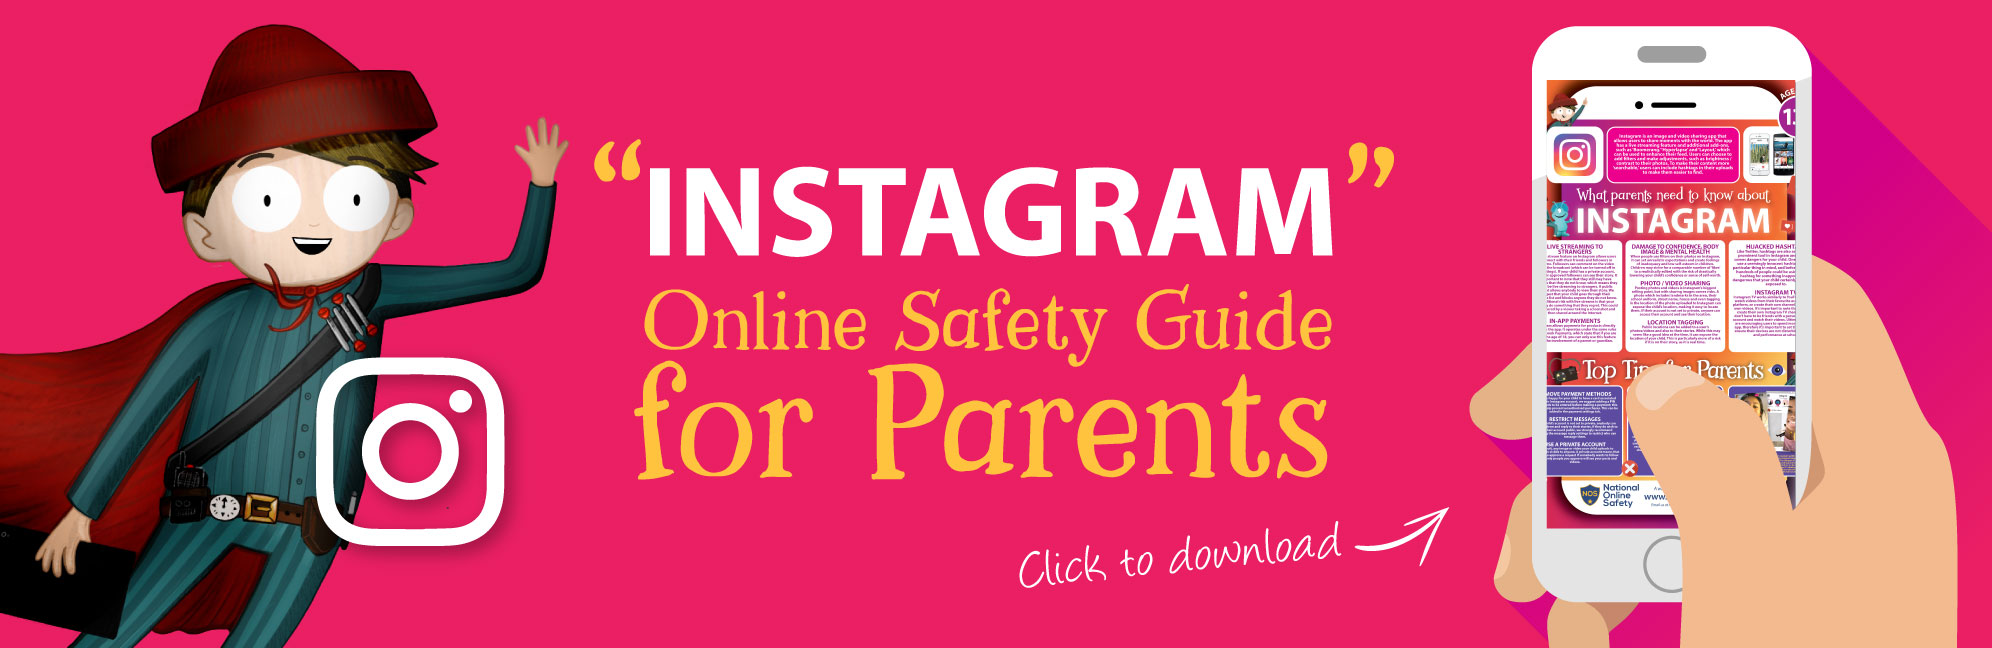 Instagram-Online-Safety-Parents-Guide-Web-Image-121118-V1